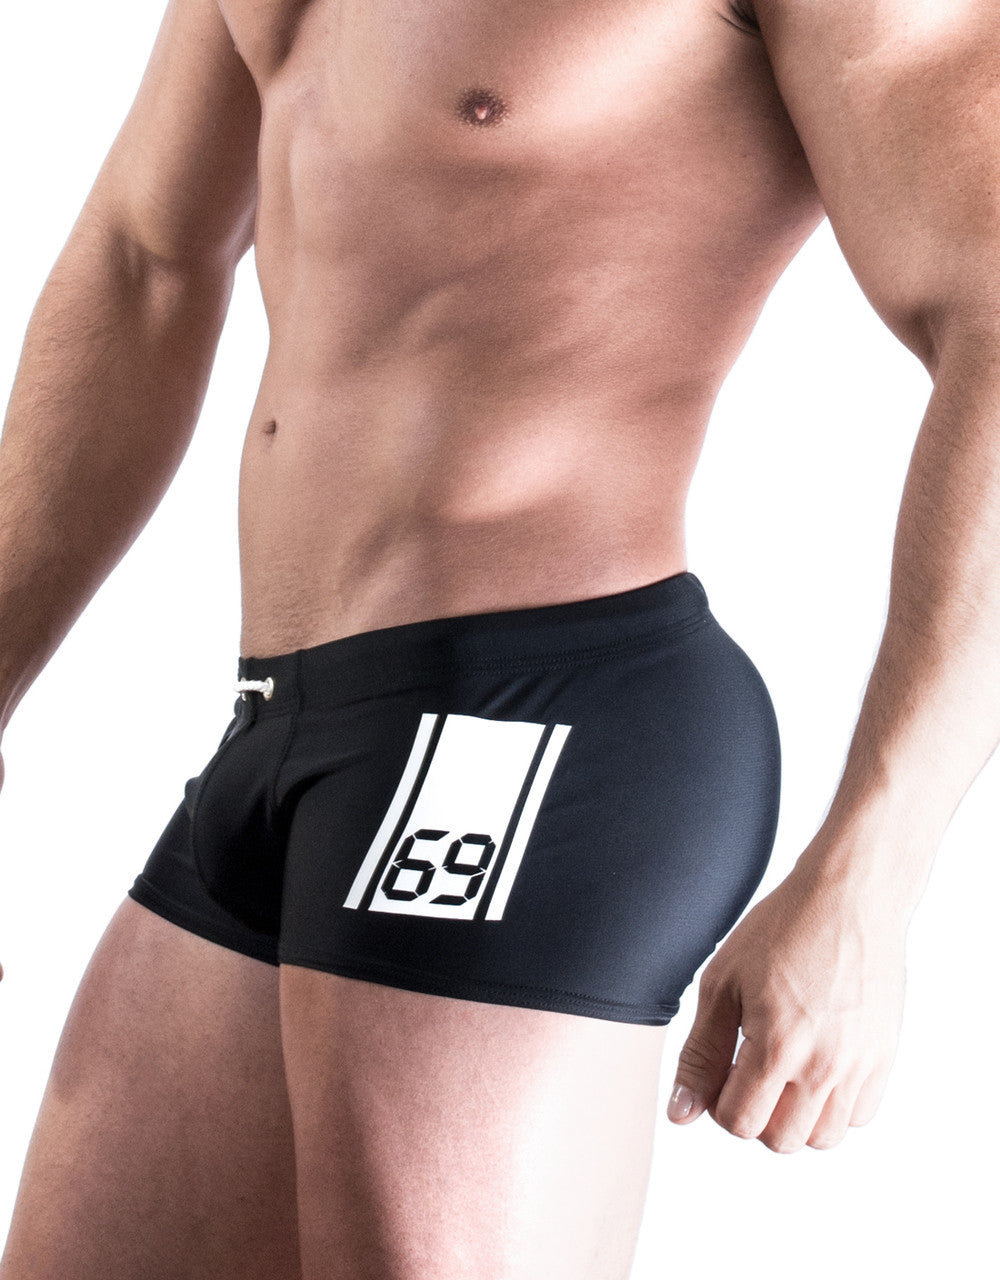 "WildmanT ""69"" SQUARE CUT SWIM BLACK - Big Penis Underwear, WildmanT - WildmanT"